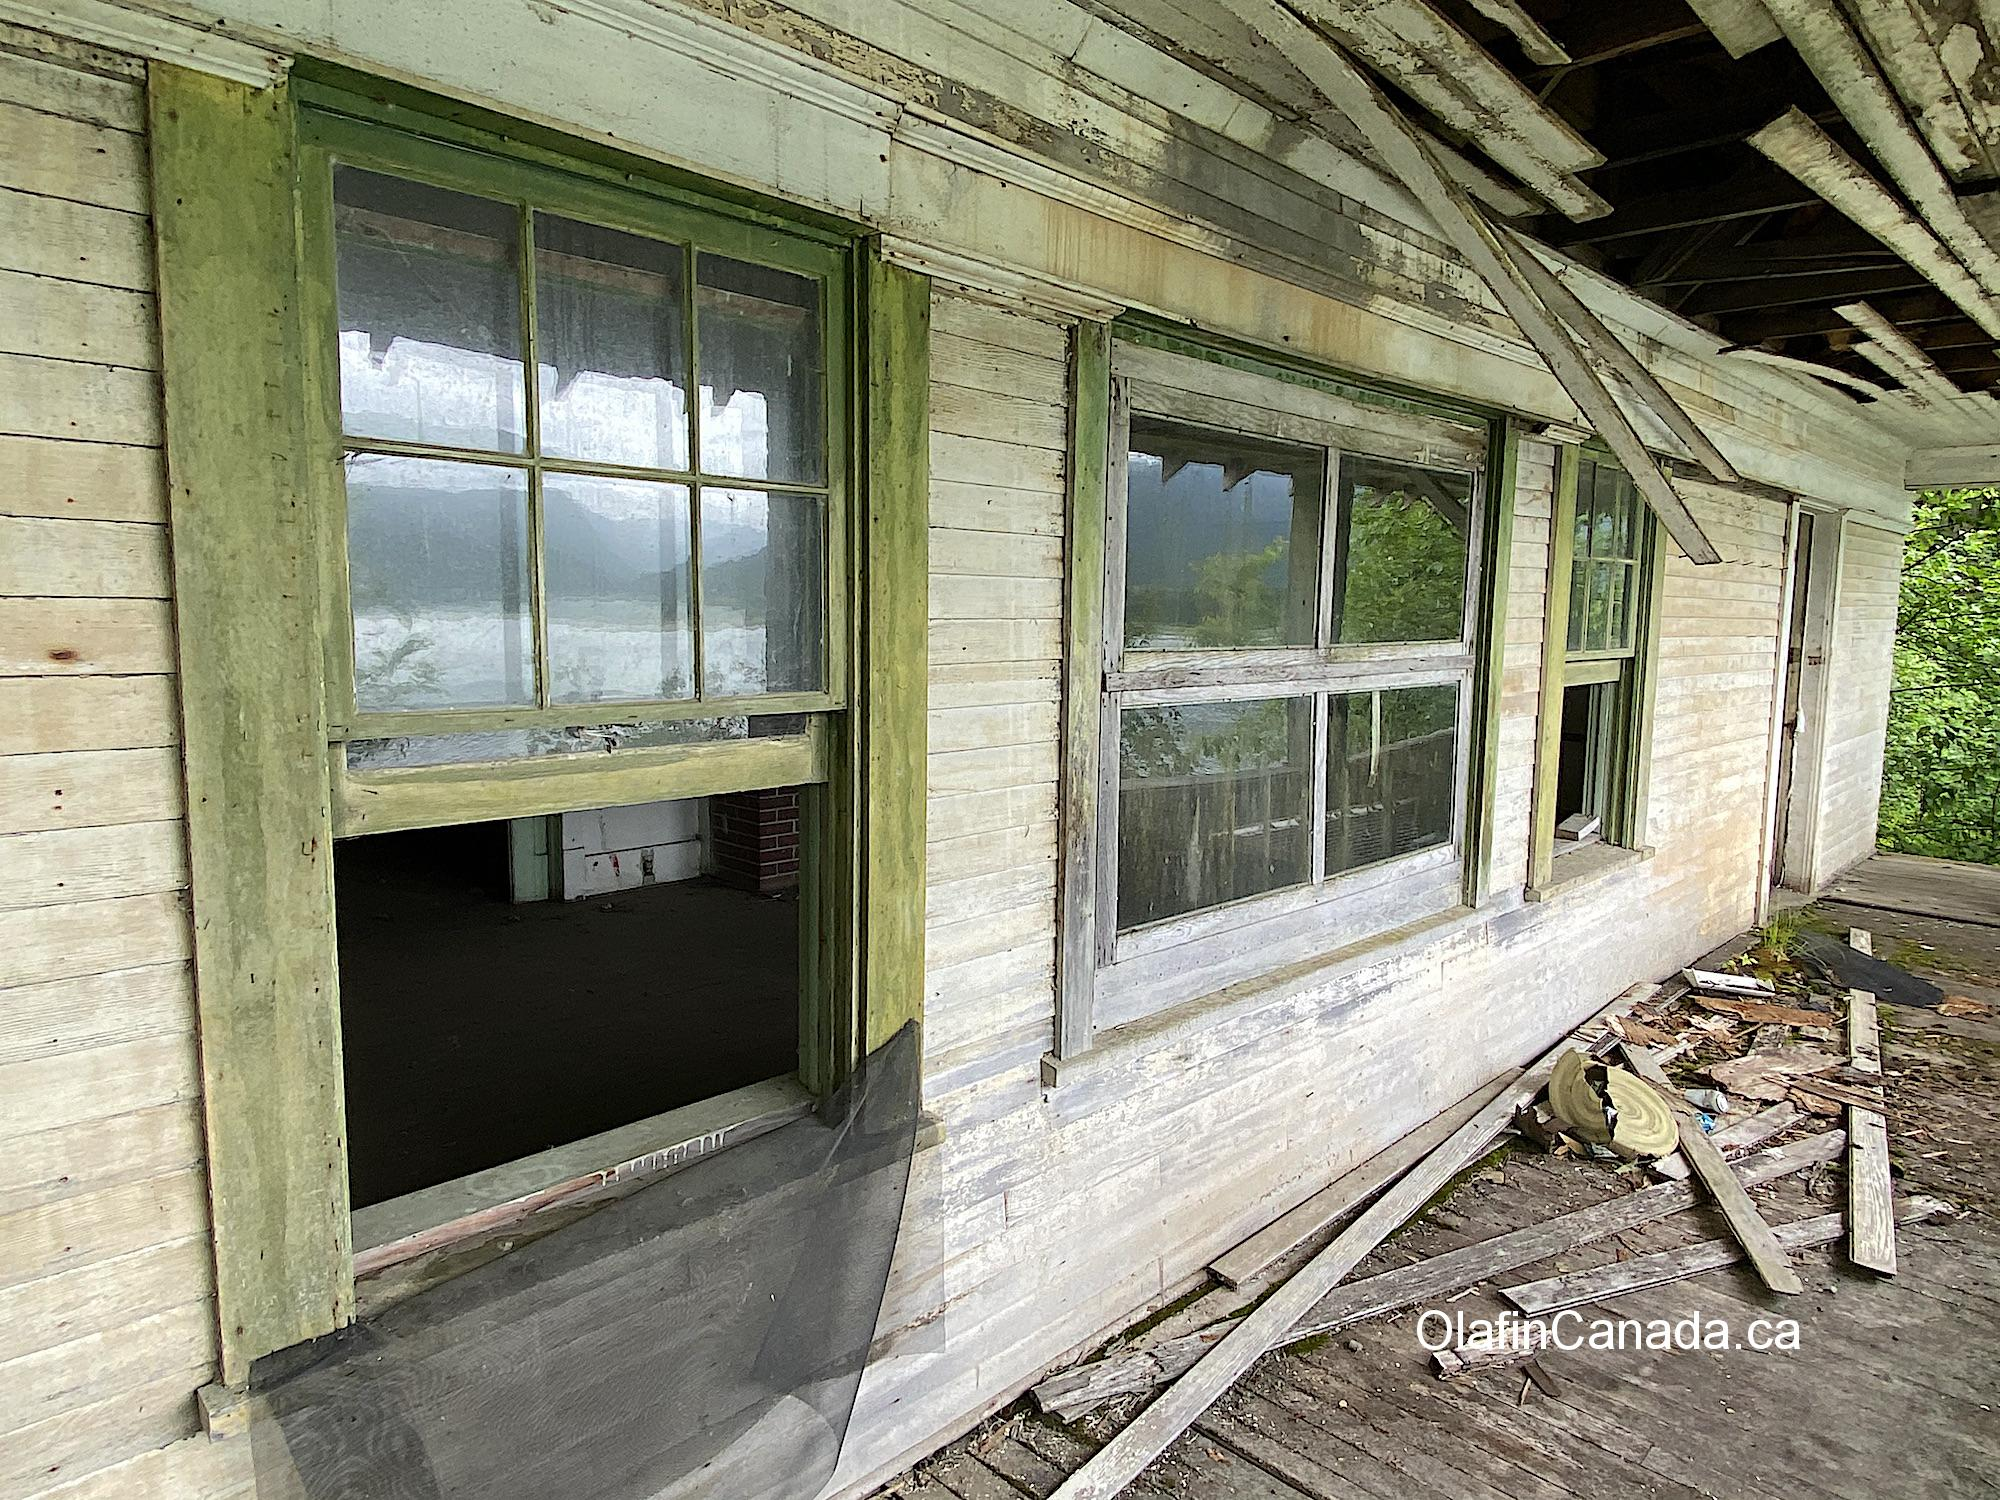 The porch of the abandoned mansion in Alice Arm #olafincanada #britishcolumbia #discoverbc #abandonedbc #alicearm #mansion